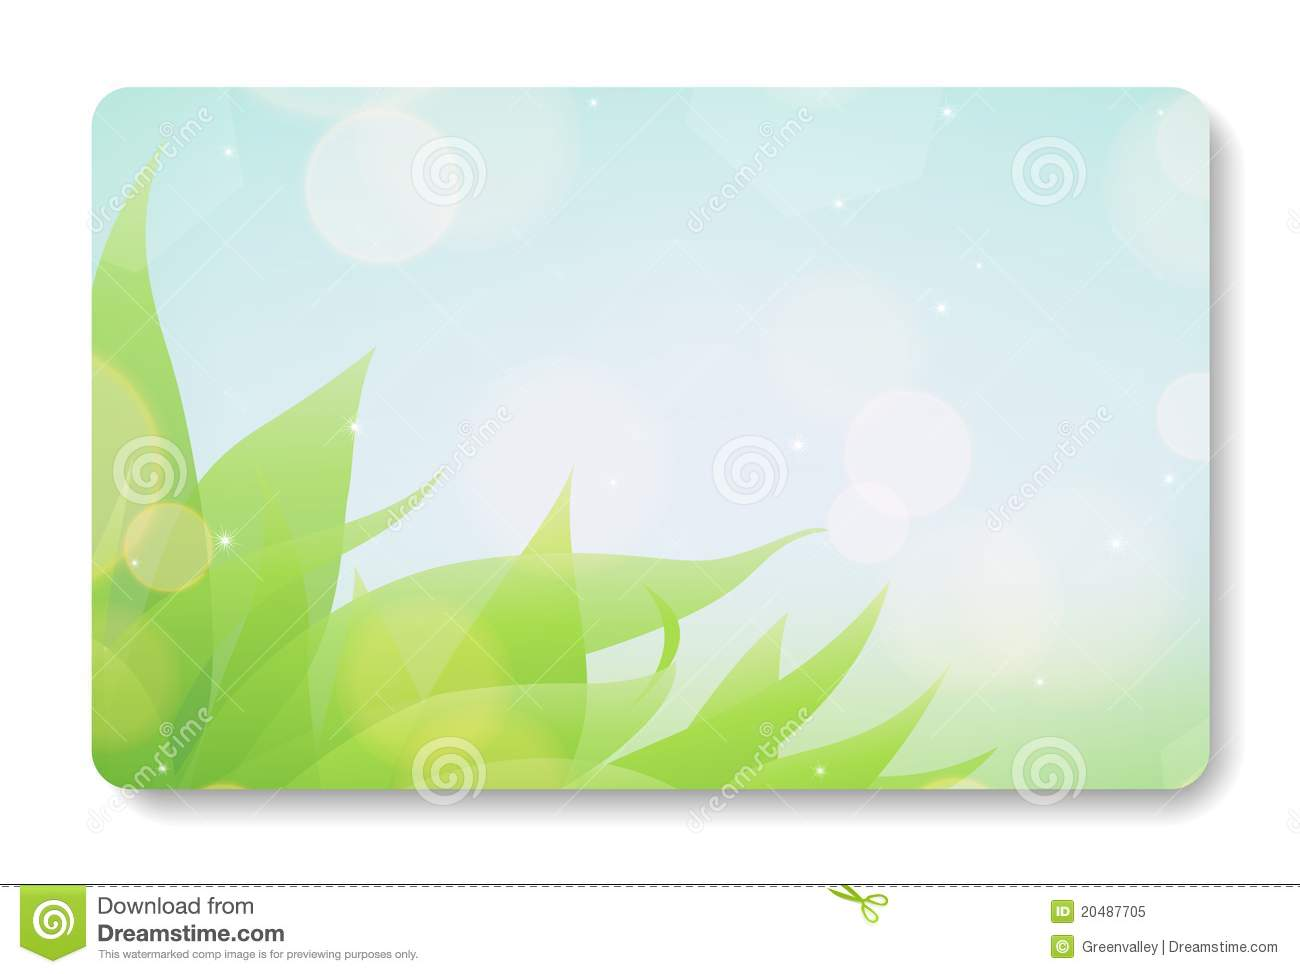 Credit Card Background Designs Business card backgroundVisiting Card Background Design Full